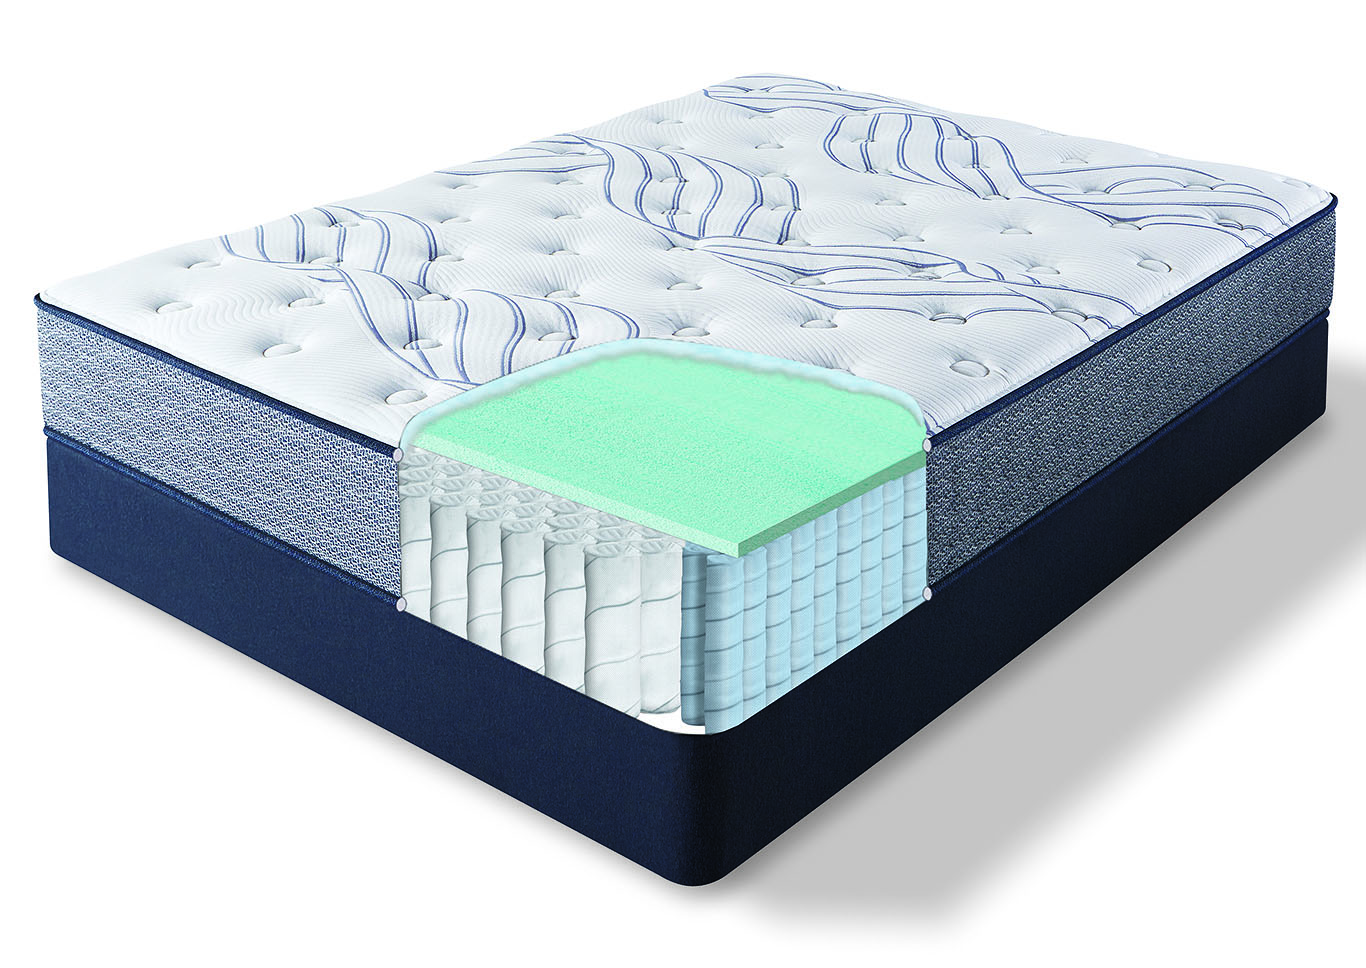 Kleinmon II Plush Queen Mattress,Huffman Koos